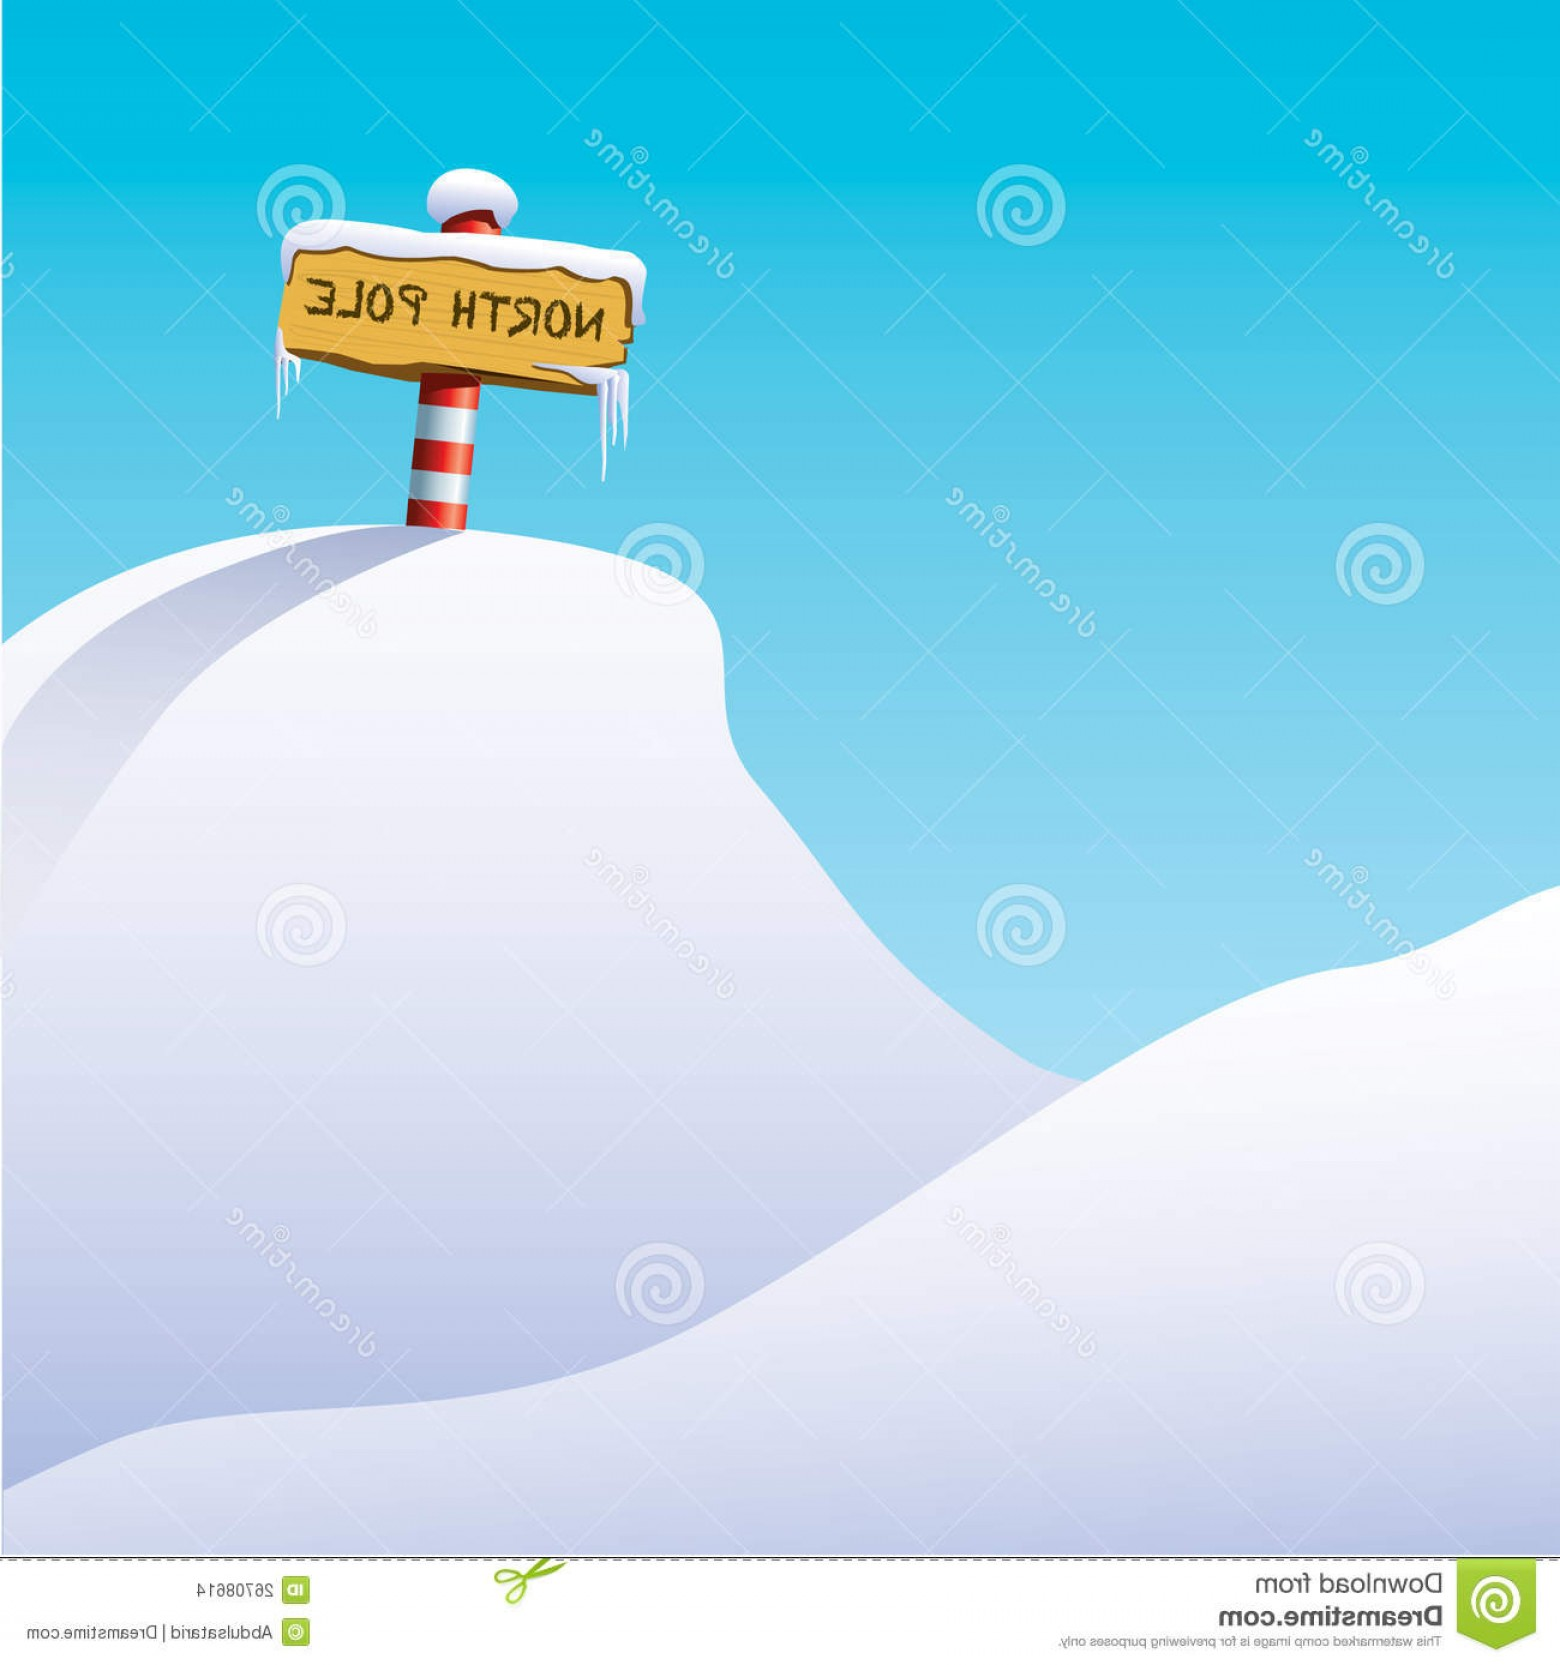 North Pole Landscape Vector: Stock Images Illustration North Pole Image